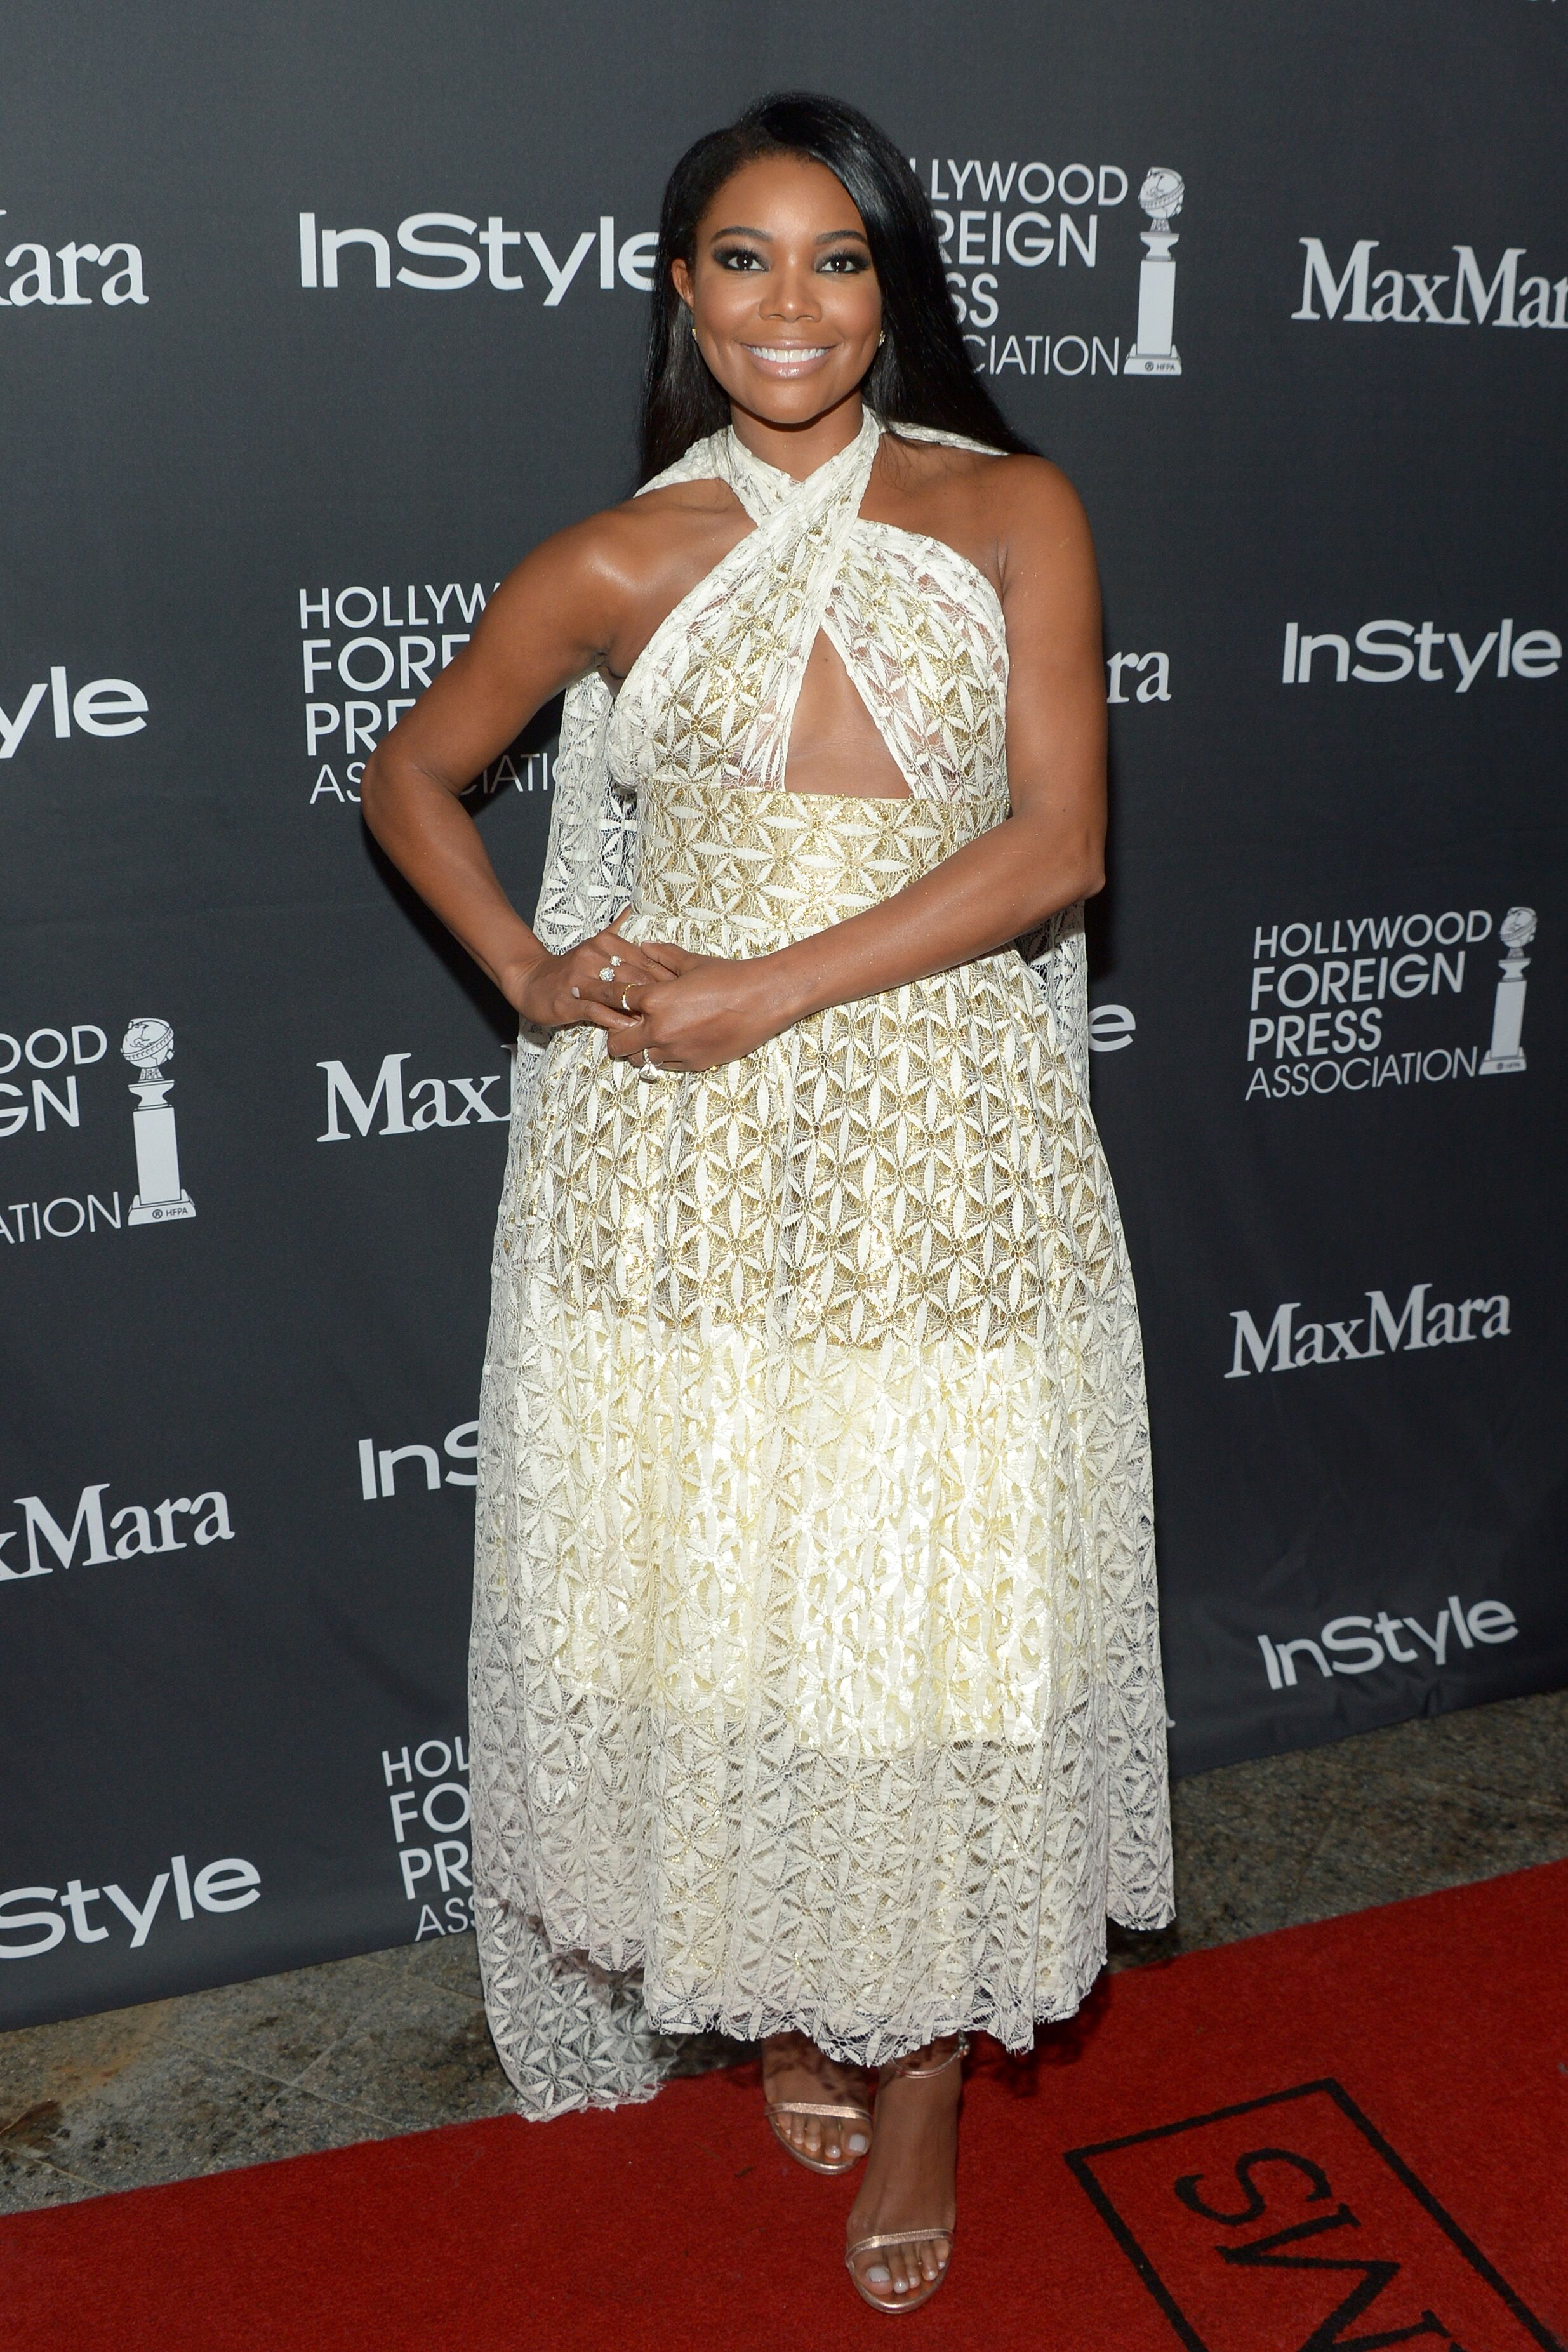 Gabrielle Union attends the TIFF/InStyle/HFPA Party during the 2016 Toronto International Film Festival on September 10, 2016 in Toronto, Canada   Photo: Getty Images